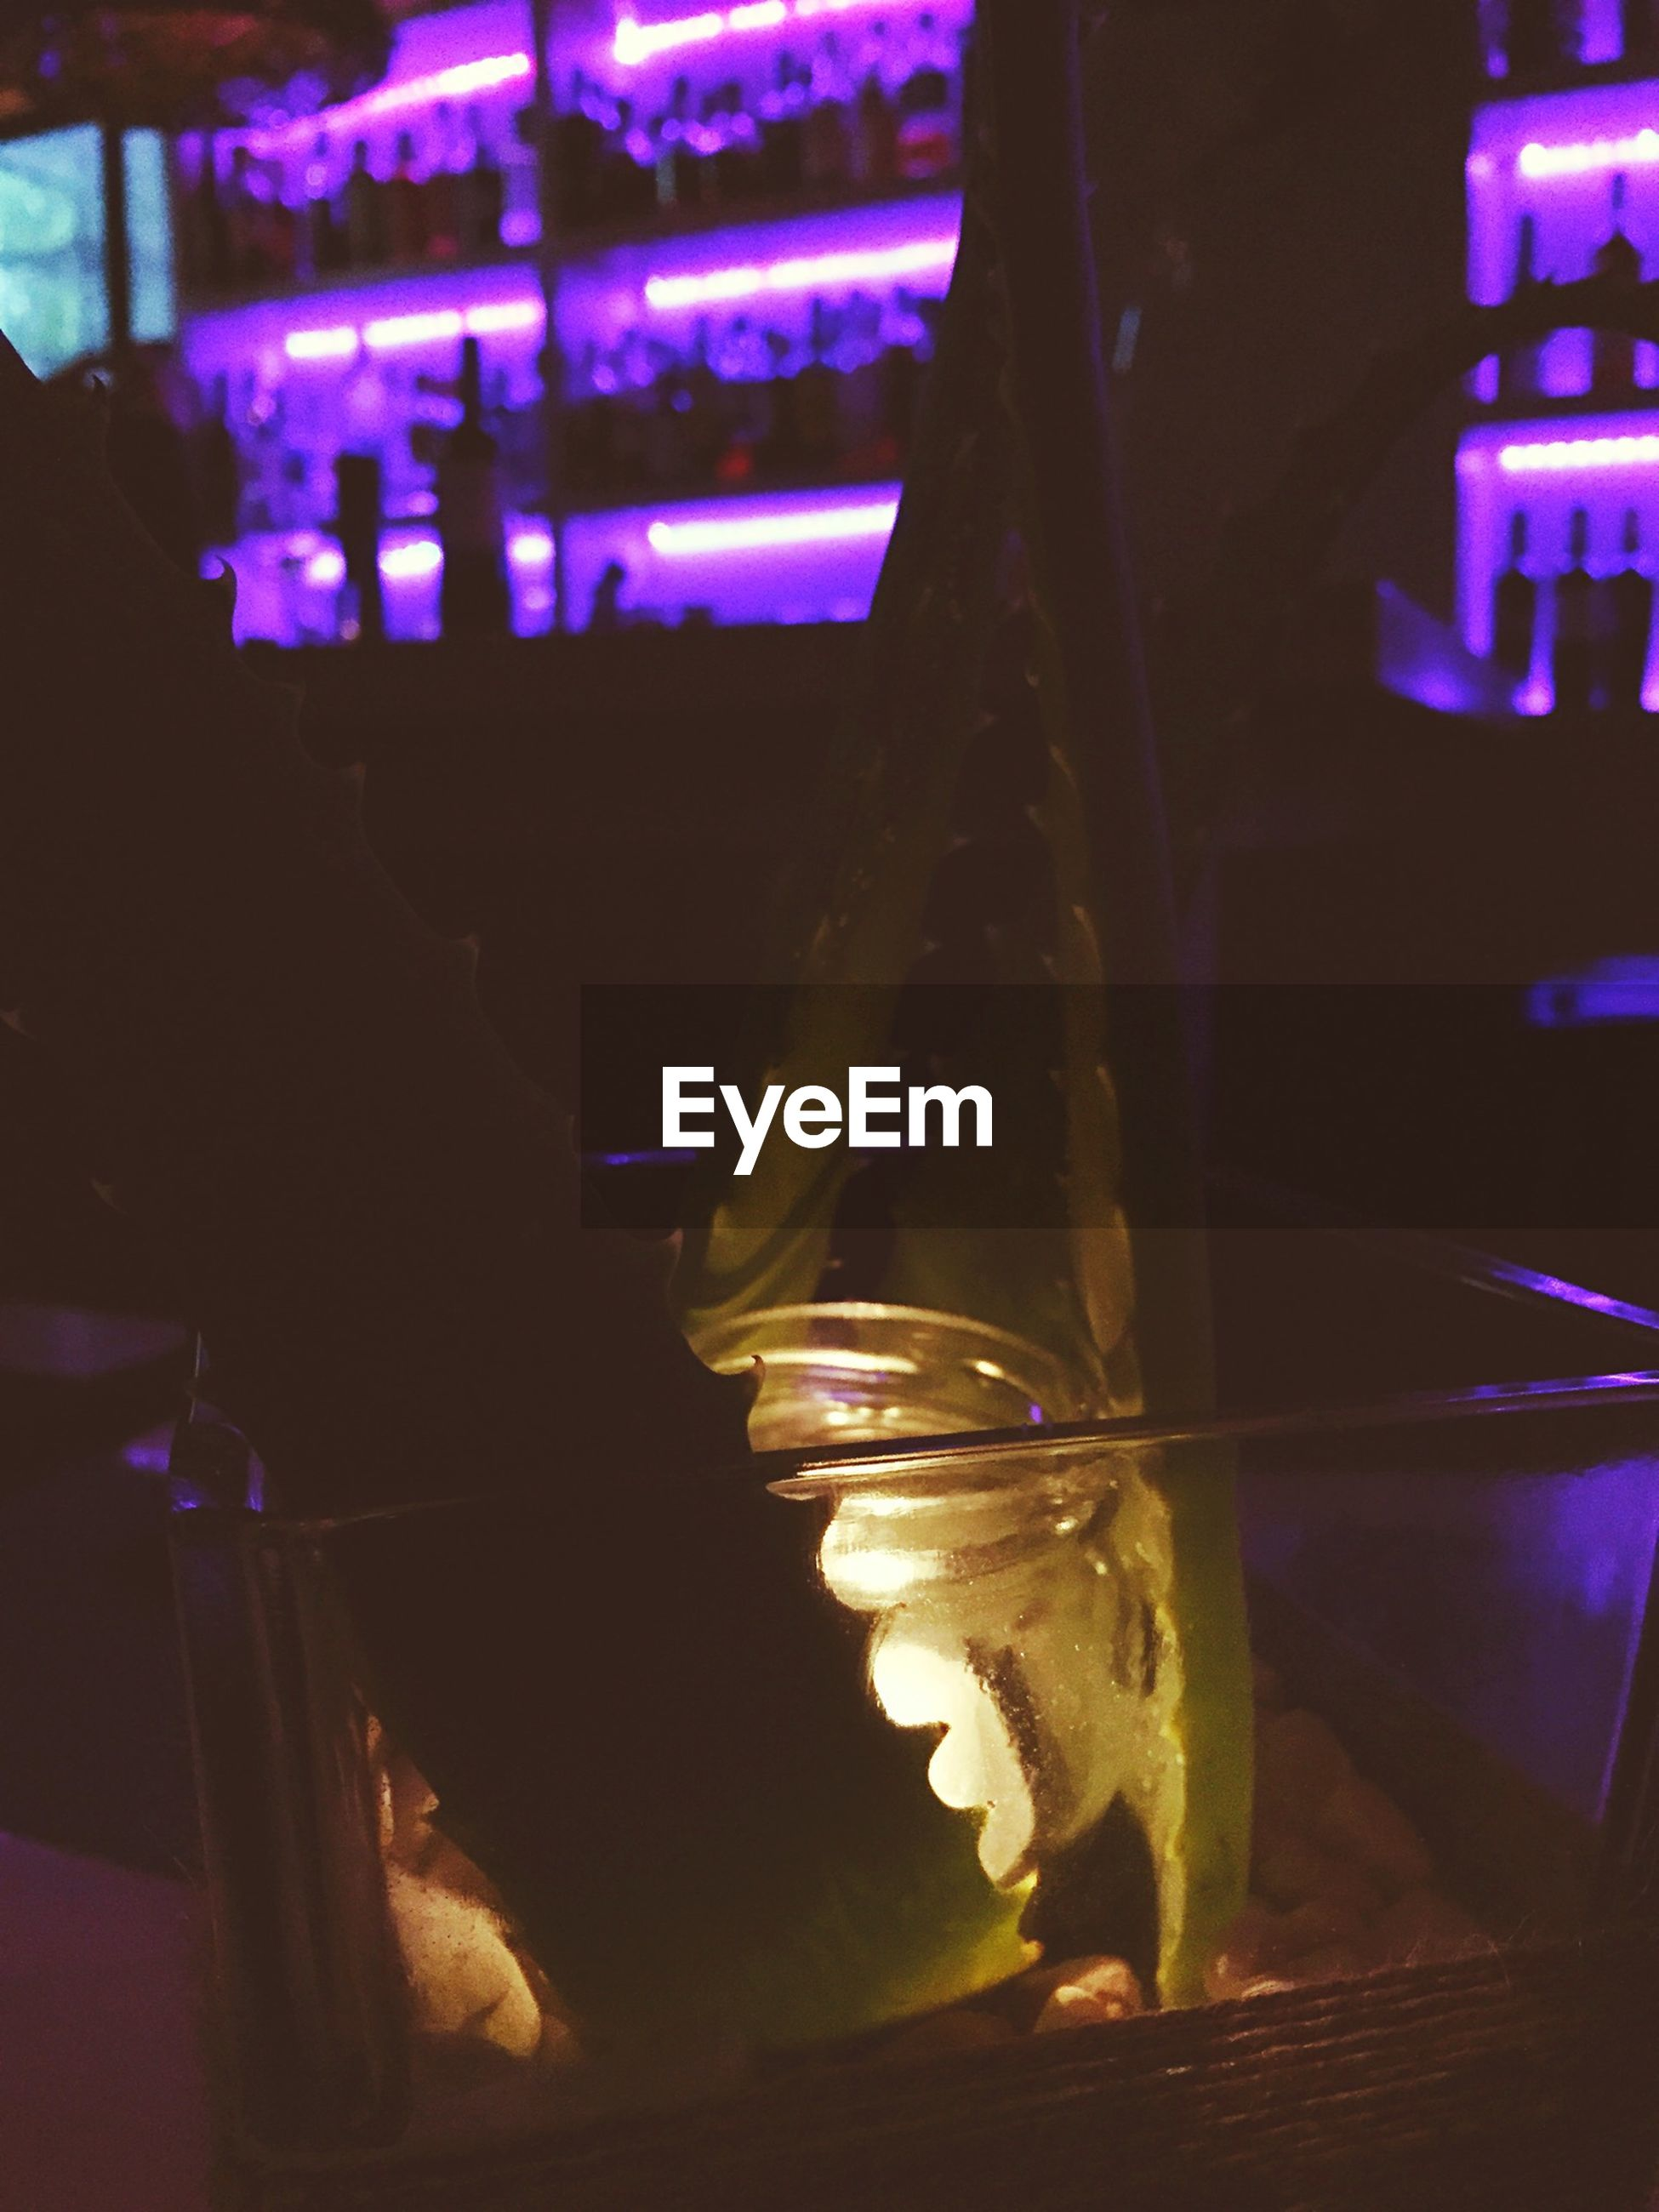 illuminated, night, indoors, focus on foreground, selective focus, close-up, table, lighting equipment, glowing, light - natural phenomenon, reflection, glass - material, no people, dark, still life, candle, lit, restaurant, burning, electric light